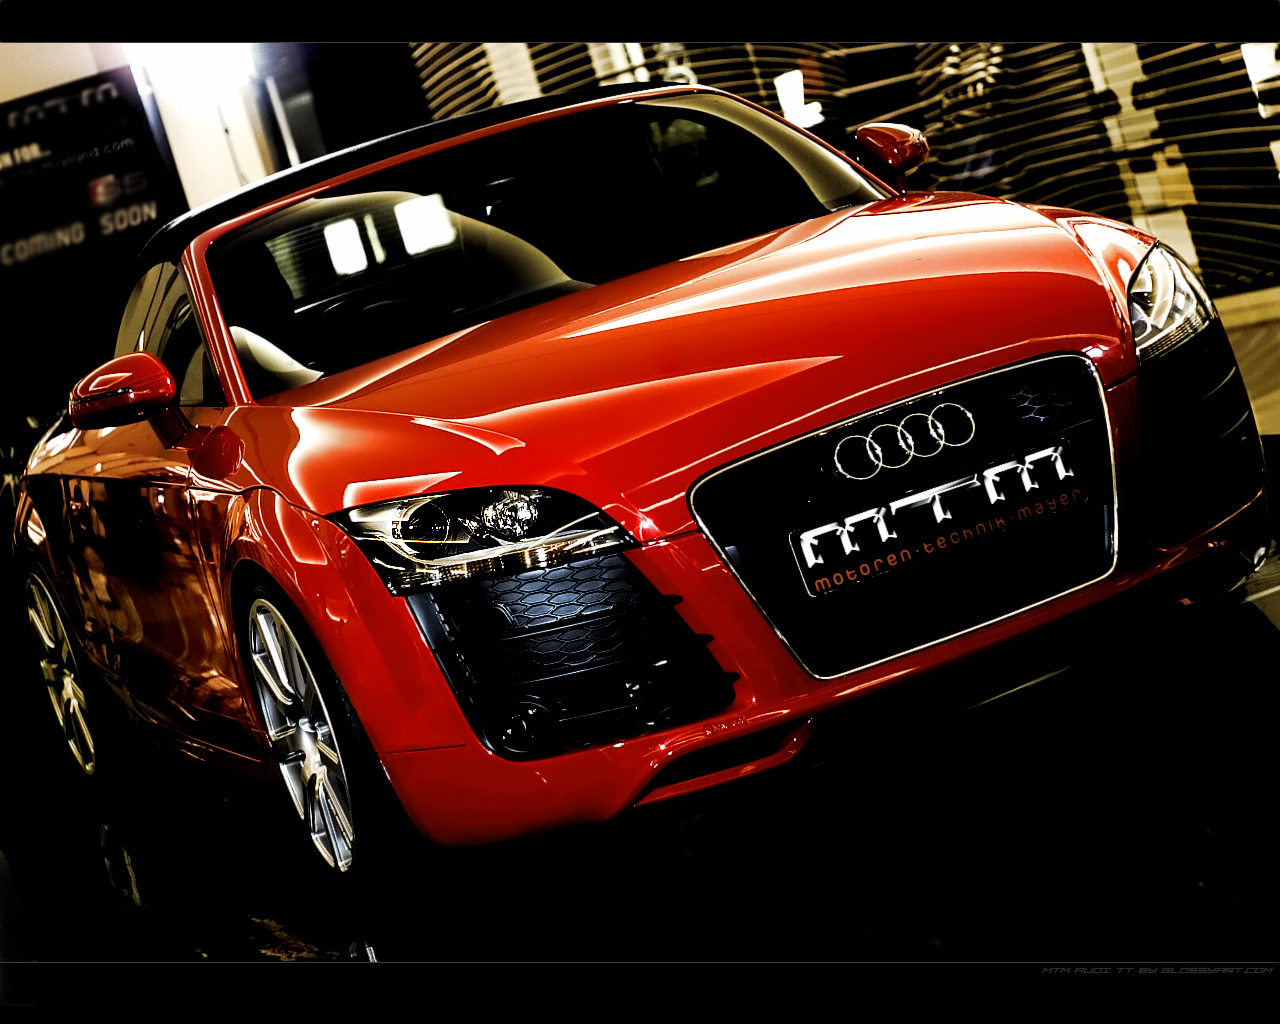 mtm Audi TT Wallpaper 2 by nxxos